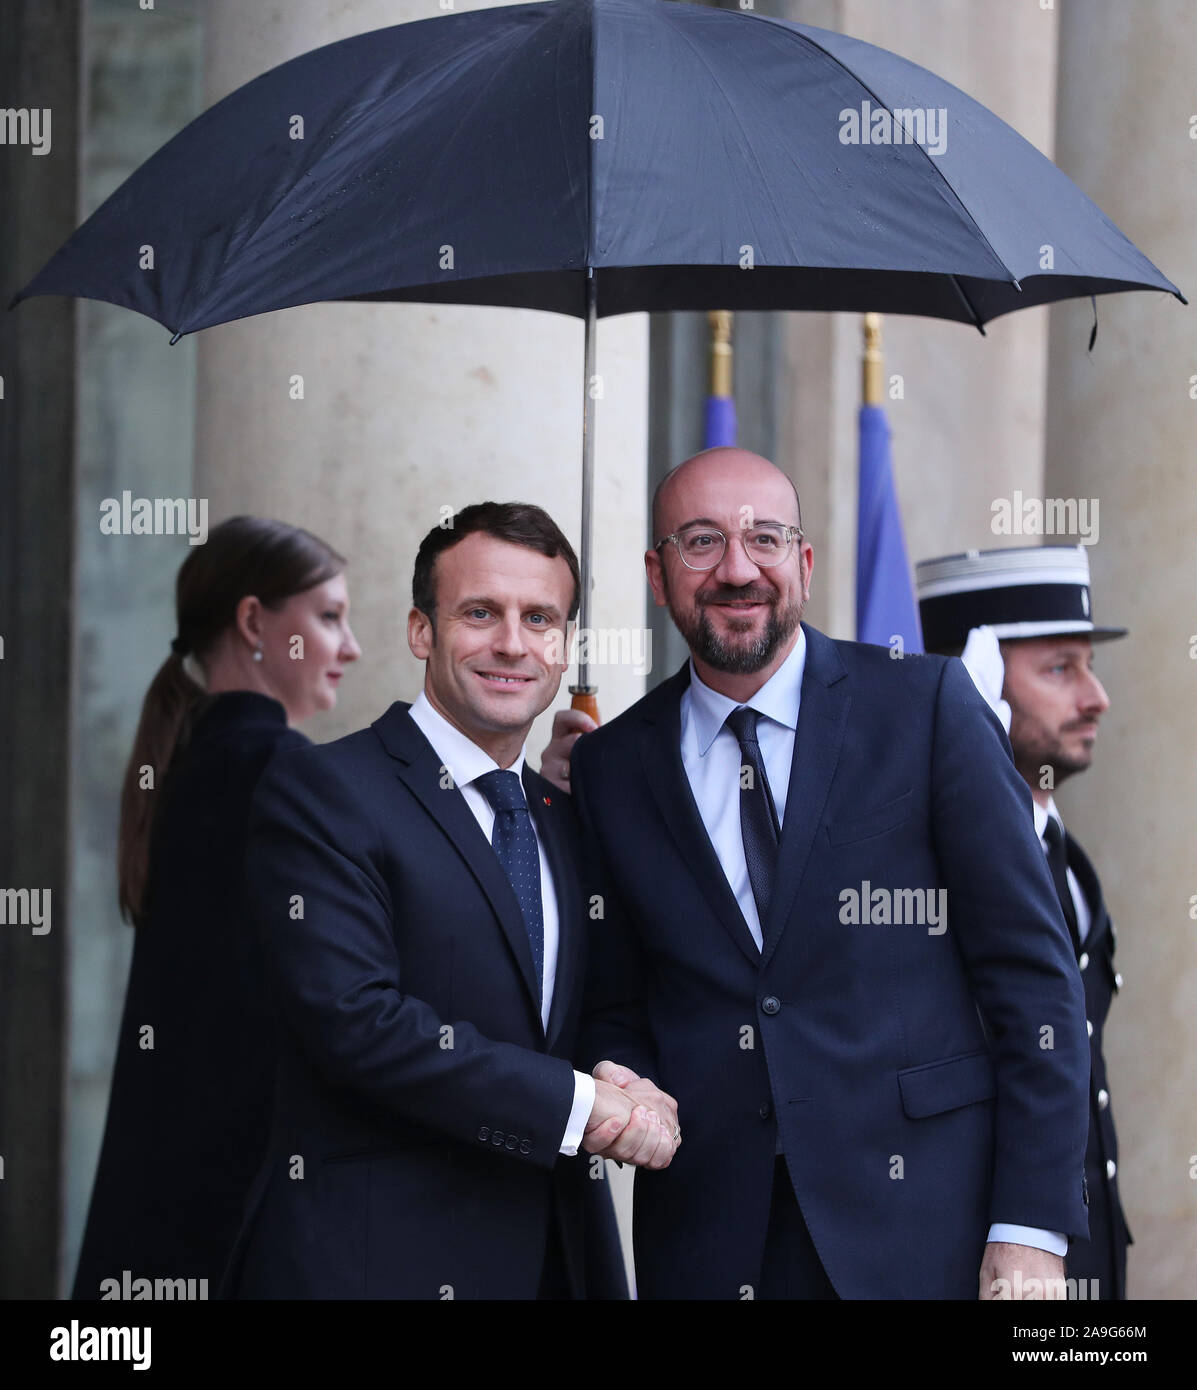 Paris France 15th Nov 2019 French President Emmanuel Macron Welcomes Belgian Prime Minister And European Council President Elect Charles Michel Before A Meeting At The Elysee Presidential Palace In Paris France Nov 15